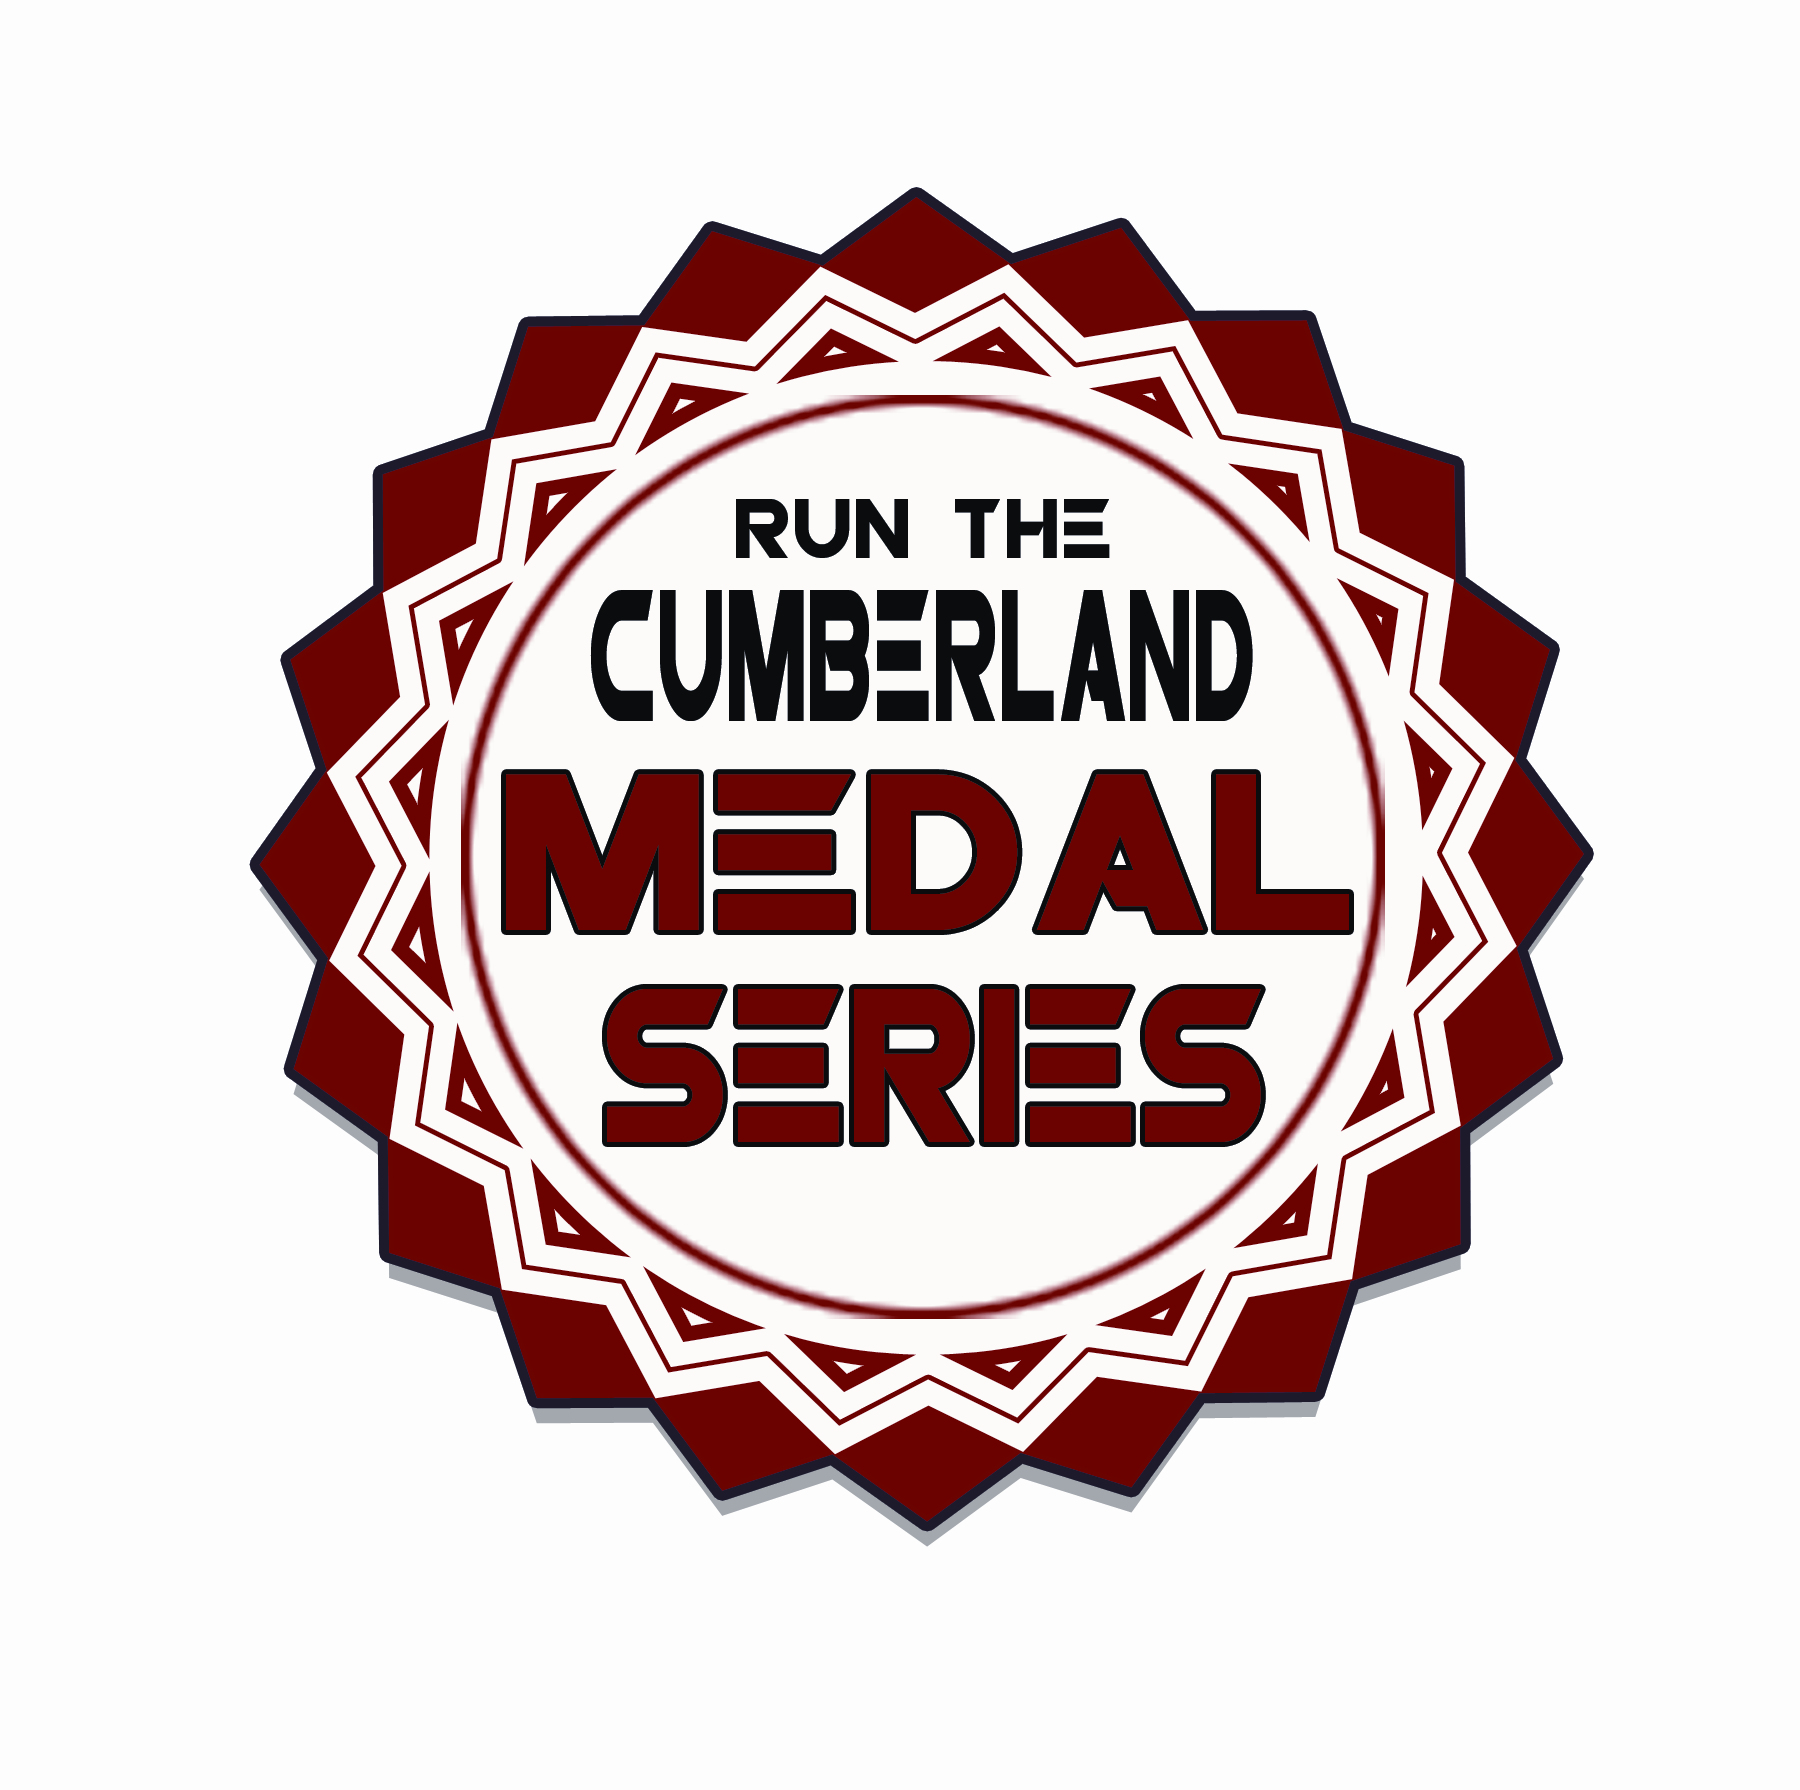 Run the Cumberland Series